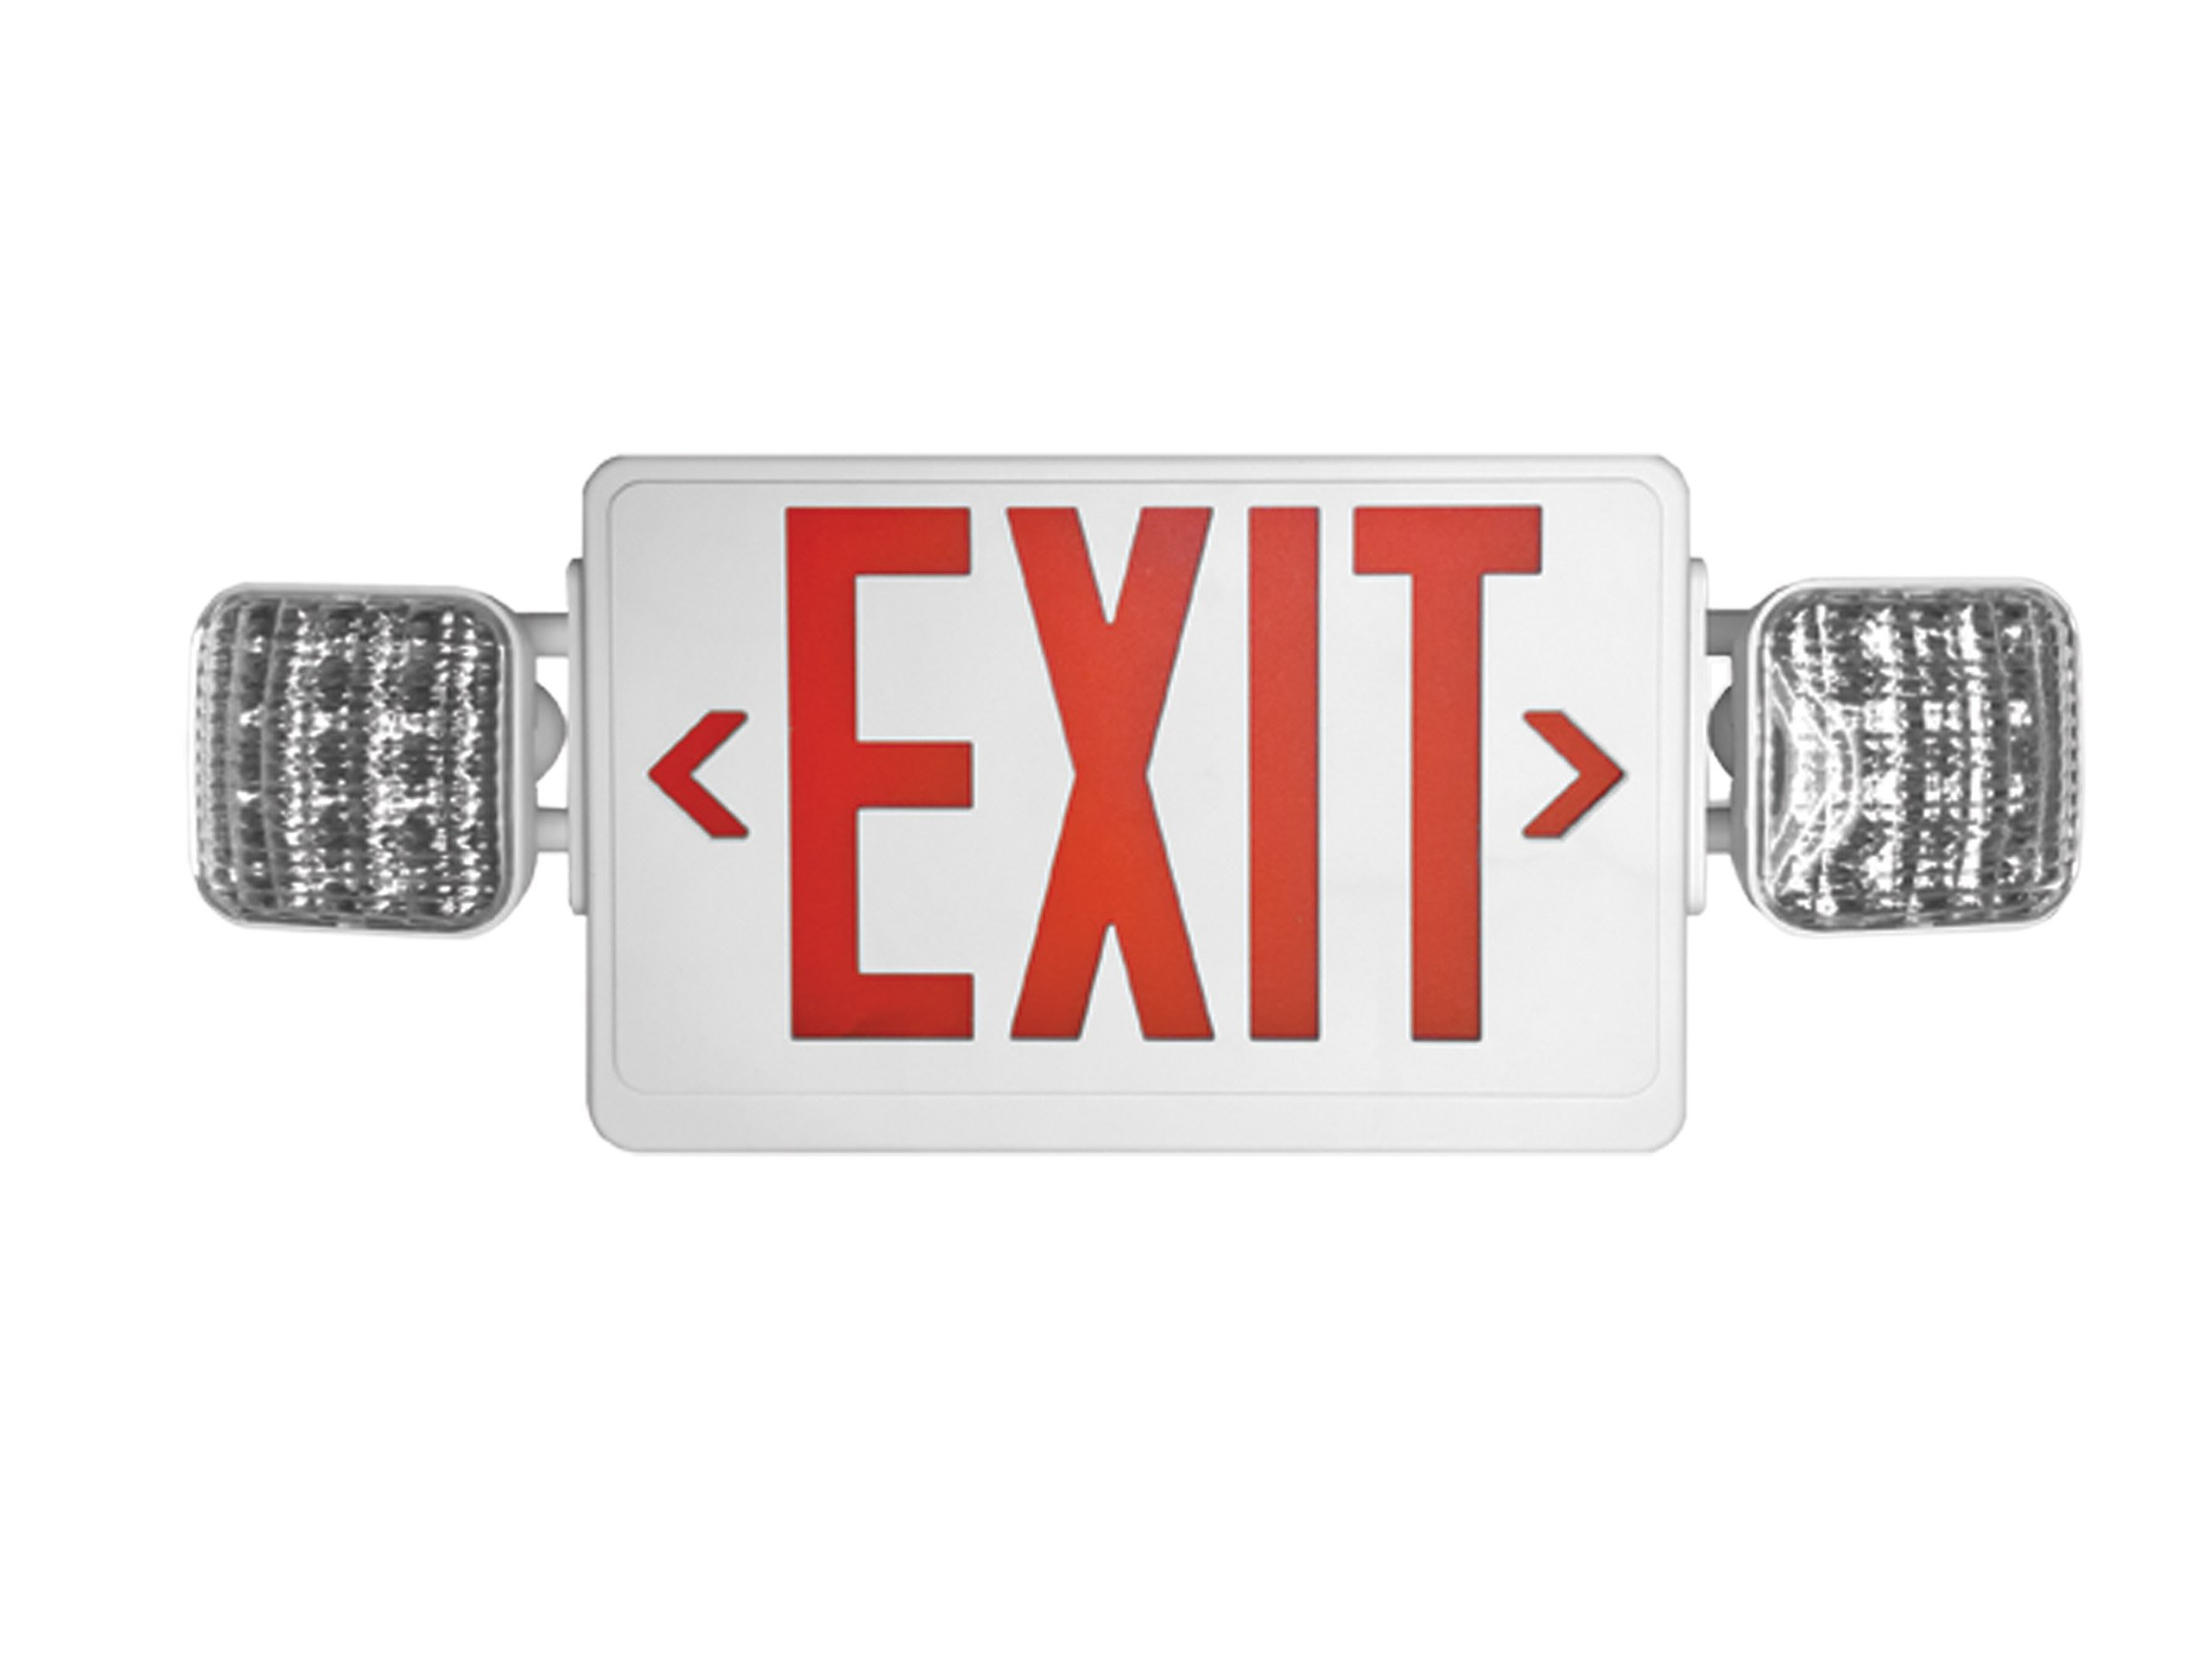 Howard Lighting HL03143RW Combo Exit/Emergency Light with Red Letters